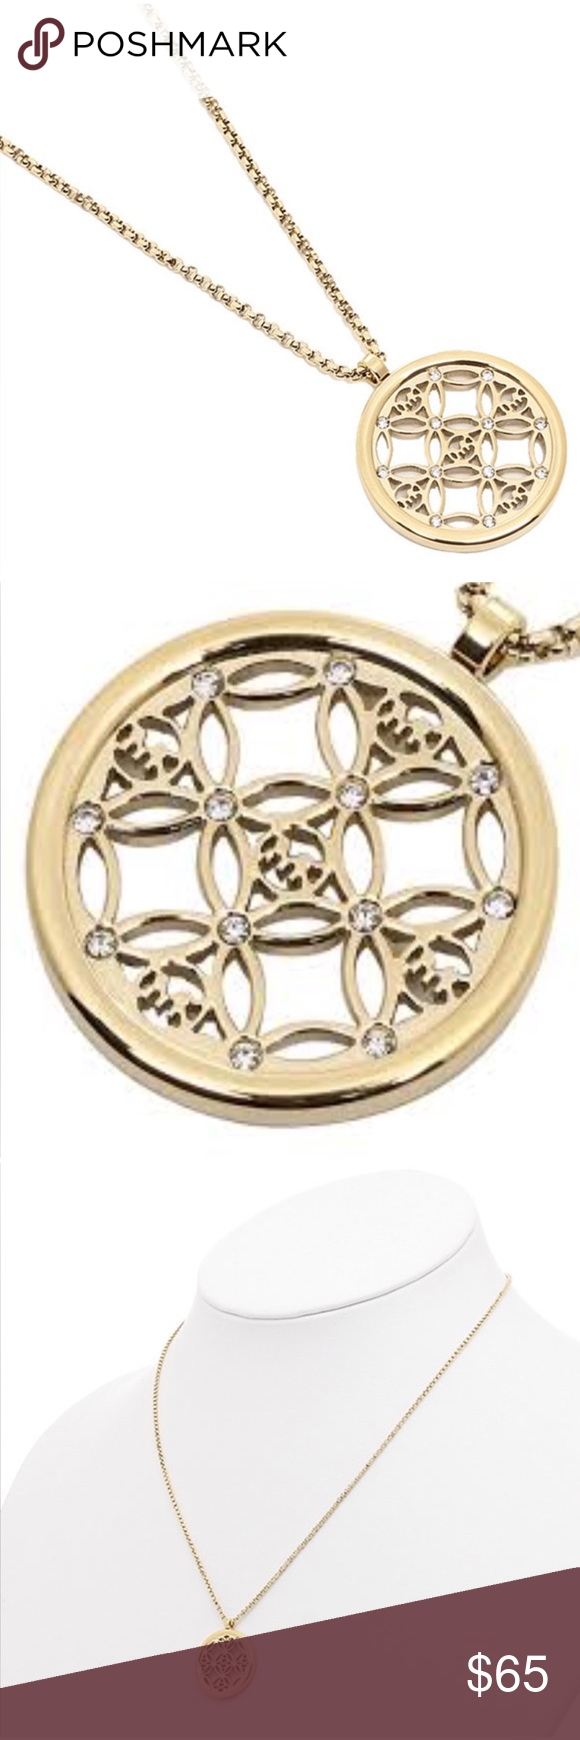 michael kors monogram gold pendant necklace nwt michael kors michael kors monogram gold pendant necklace this michael kors pendant necklace flaunts a chic circular charm mozeypictures Image collections